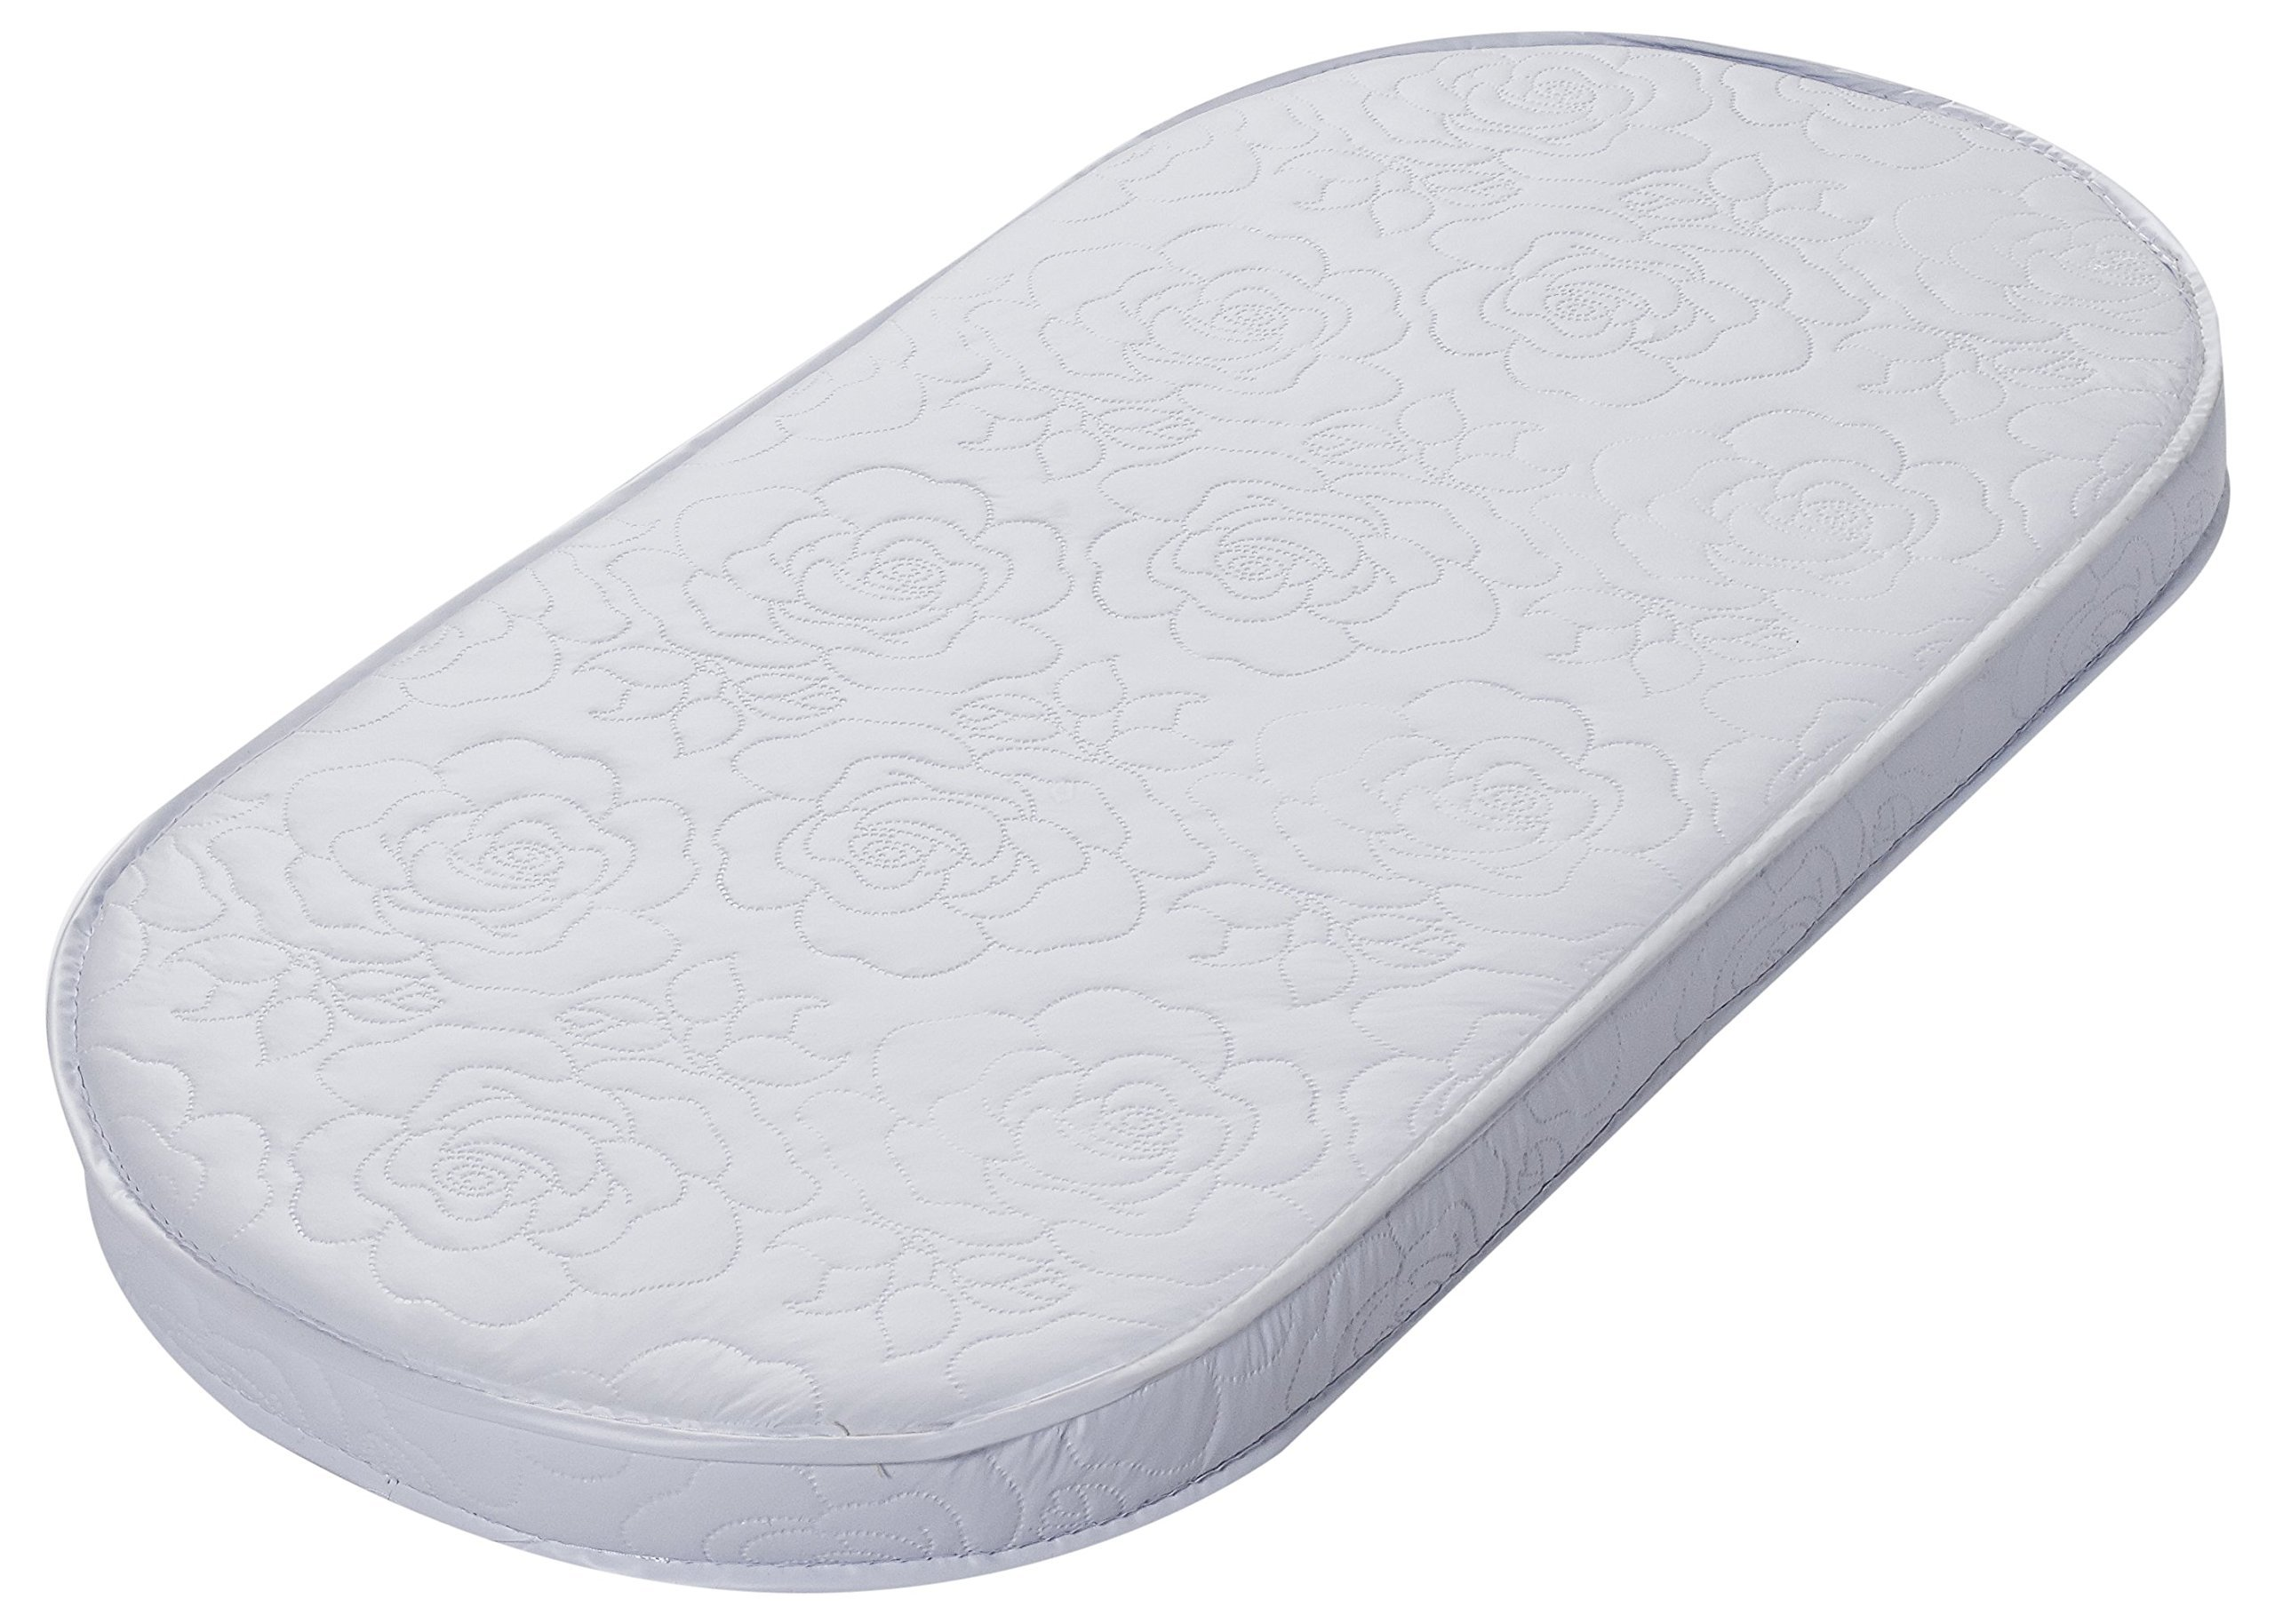 Big Oshi Quilted Waterproof Vinyl Rose Urethane Foam Bassinet Oval Mattress -